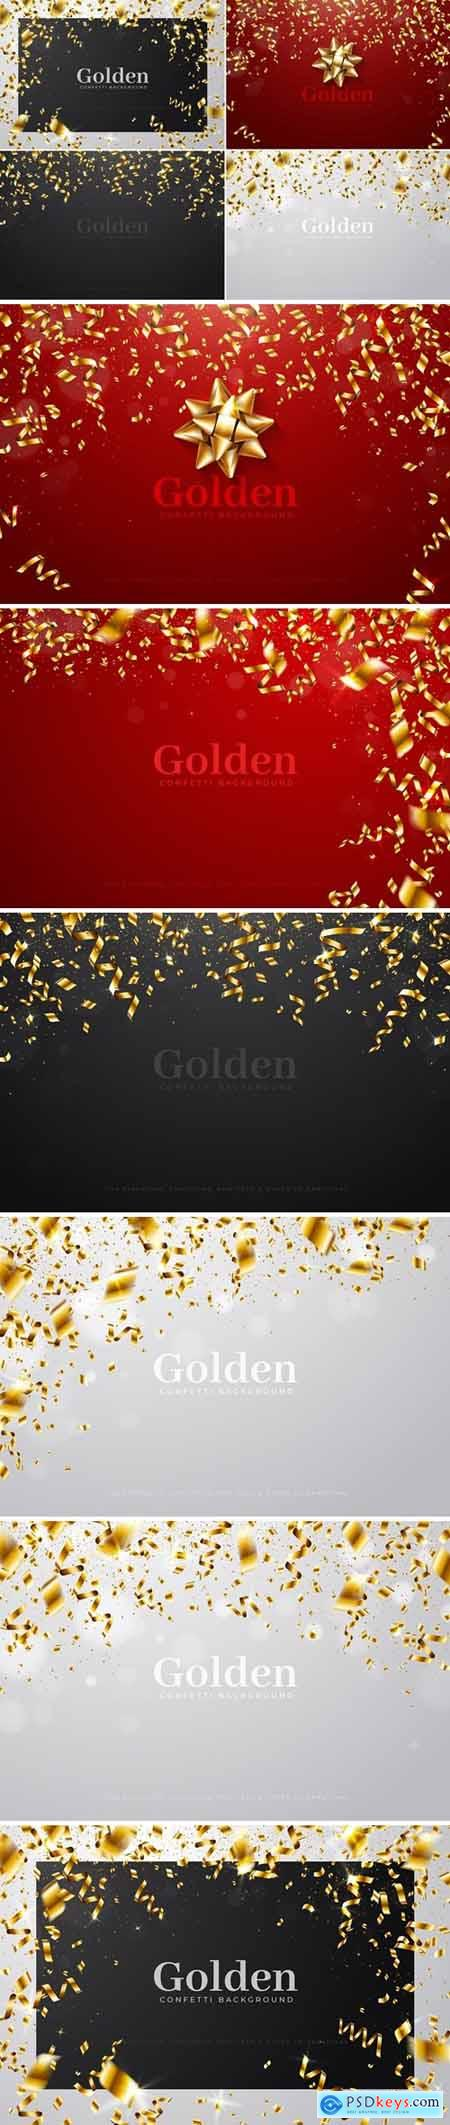 Golden Confetti Backgrounds